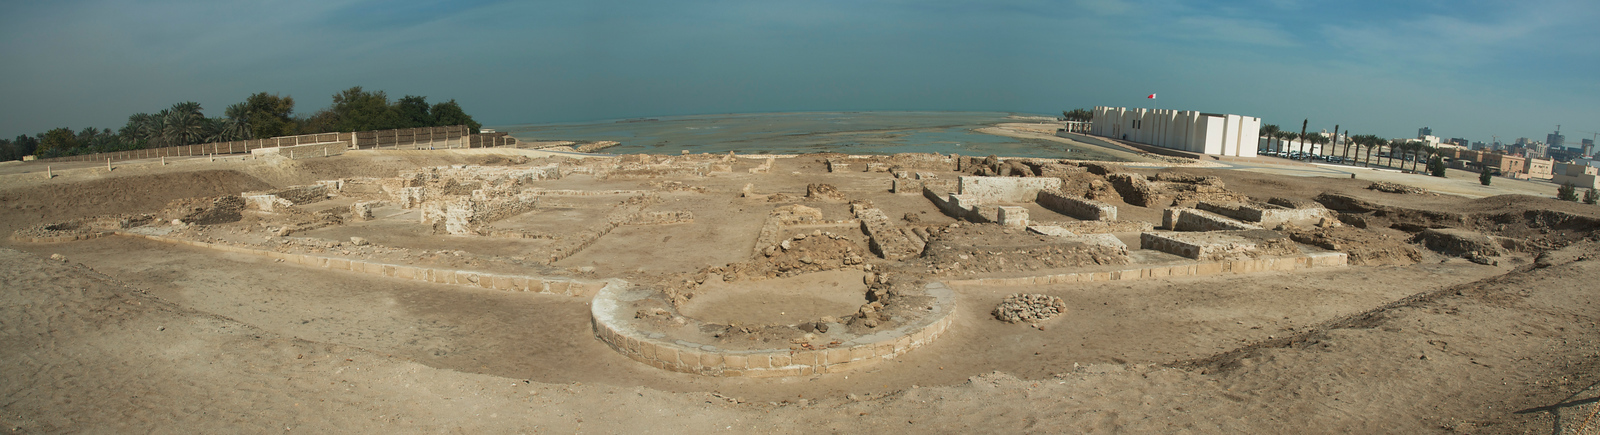 Qal'at al-Bahrain: Ancient Harbour and Capital of Dilmun - UNESCO World Heritage Site